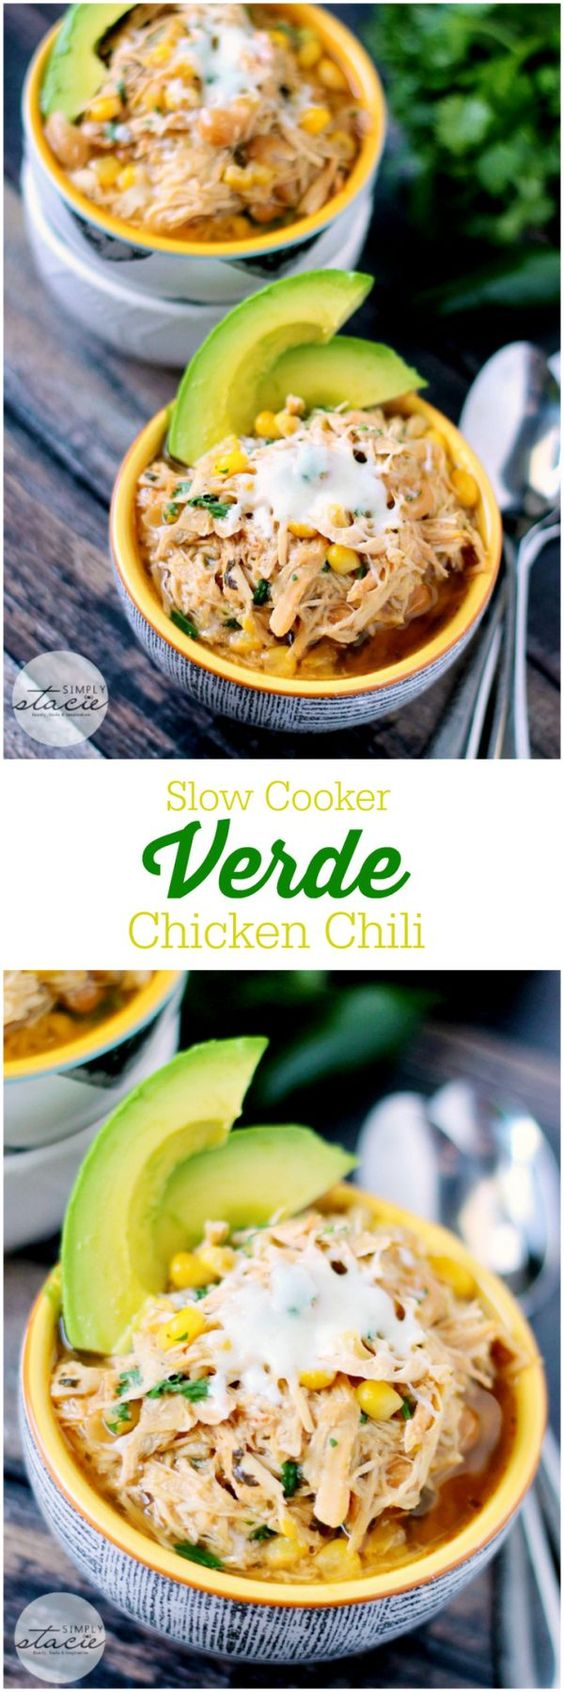 Slow Cooker Verde Chicken Chili - An easy white chili recipe with a spicy kick. Make it for dinner and I guarantee your mouth will water!